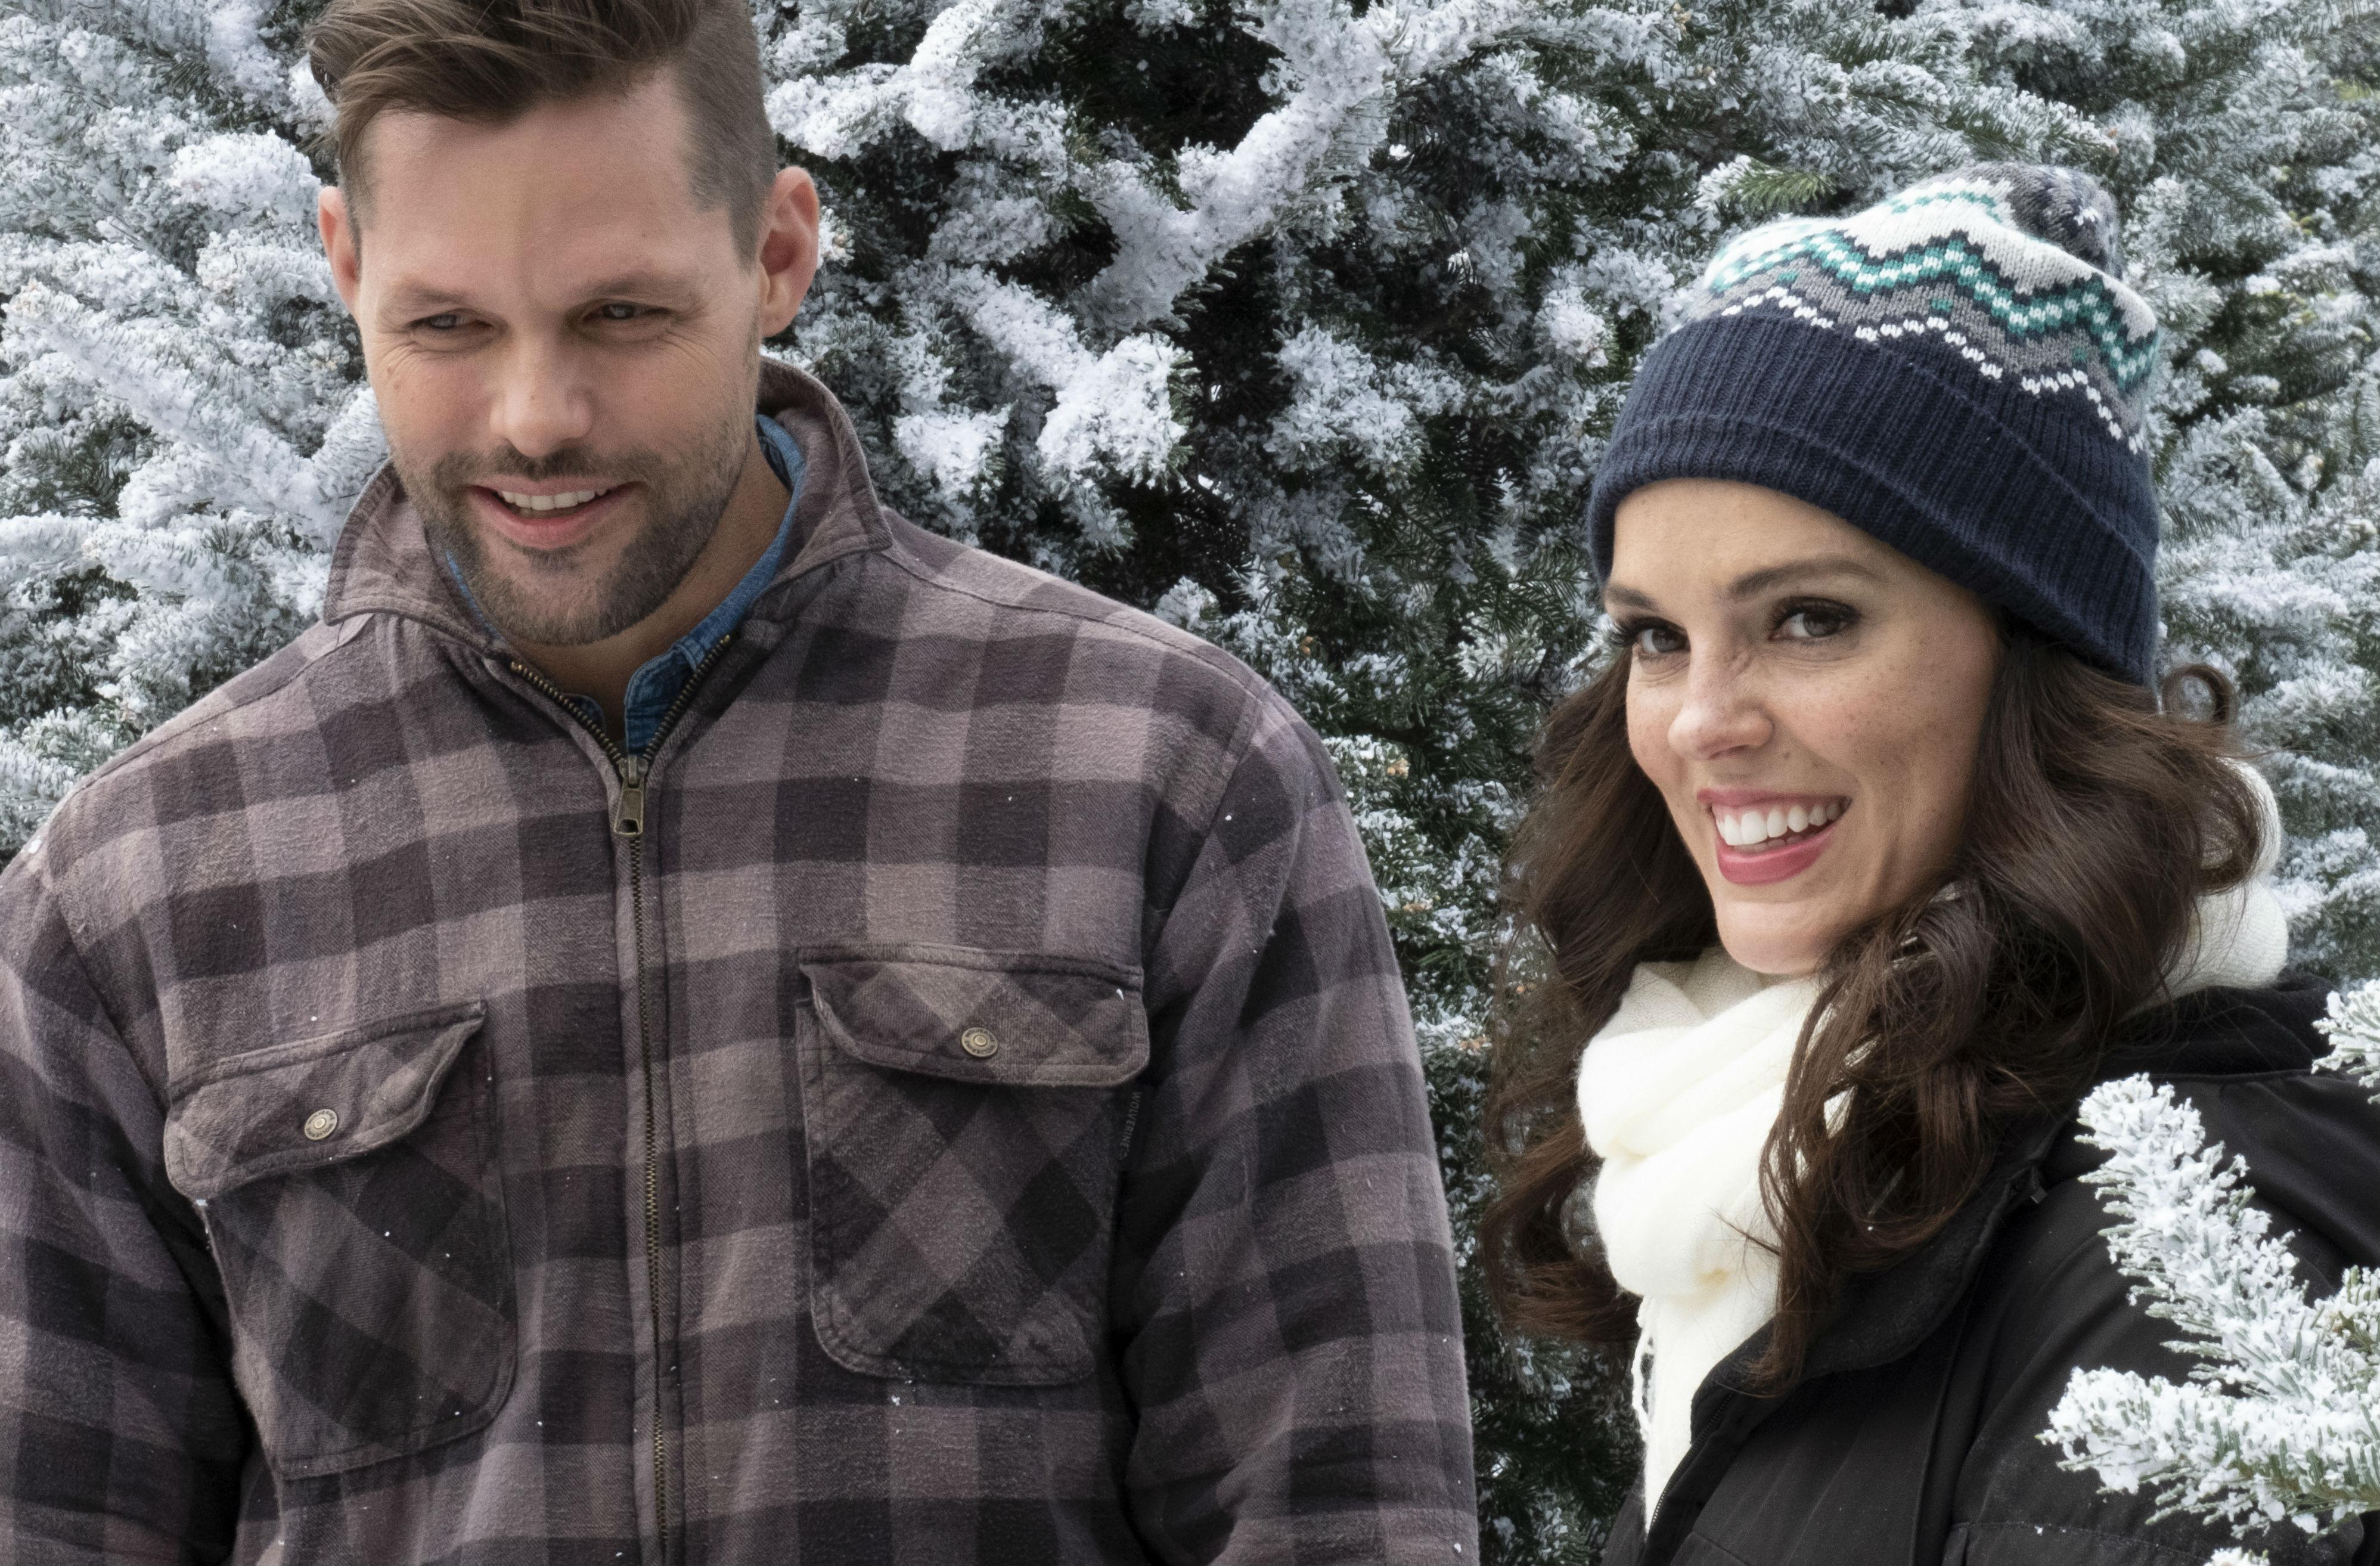 Cast Of Last Christmas In Vermont 2020 Last Vermont Christmas' Hallmark Movies Premiere: See Cast